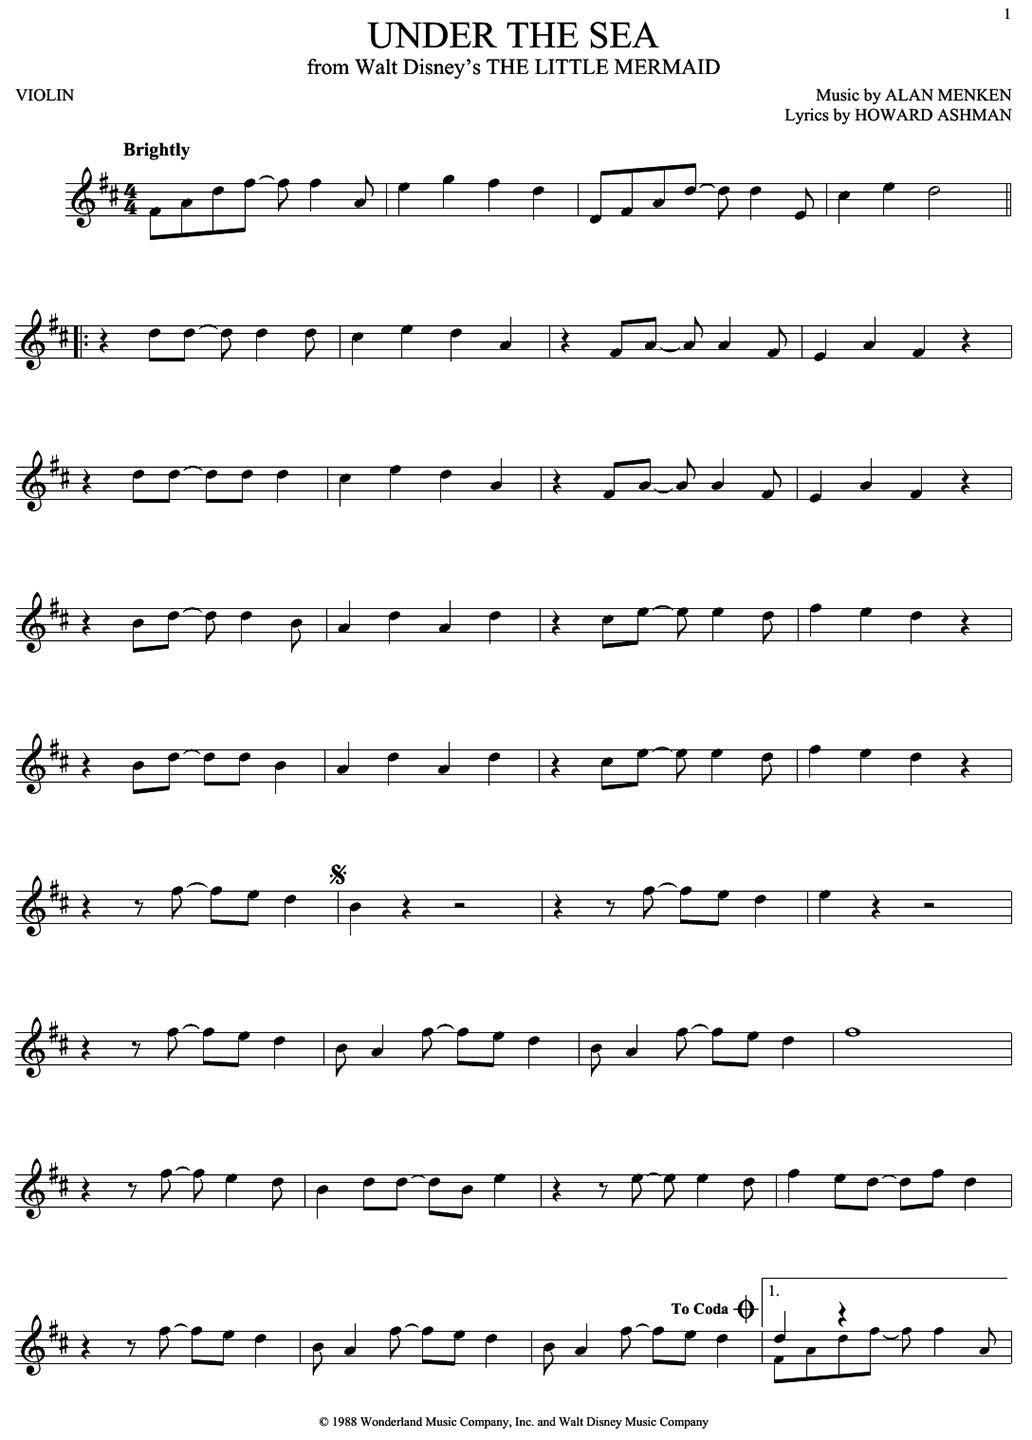 under the sea sheet music notes